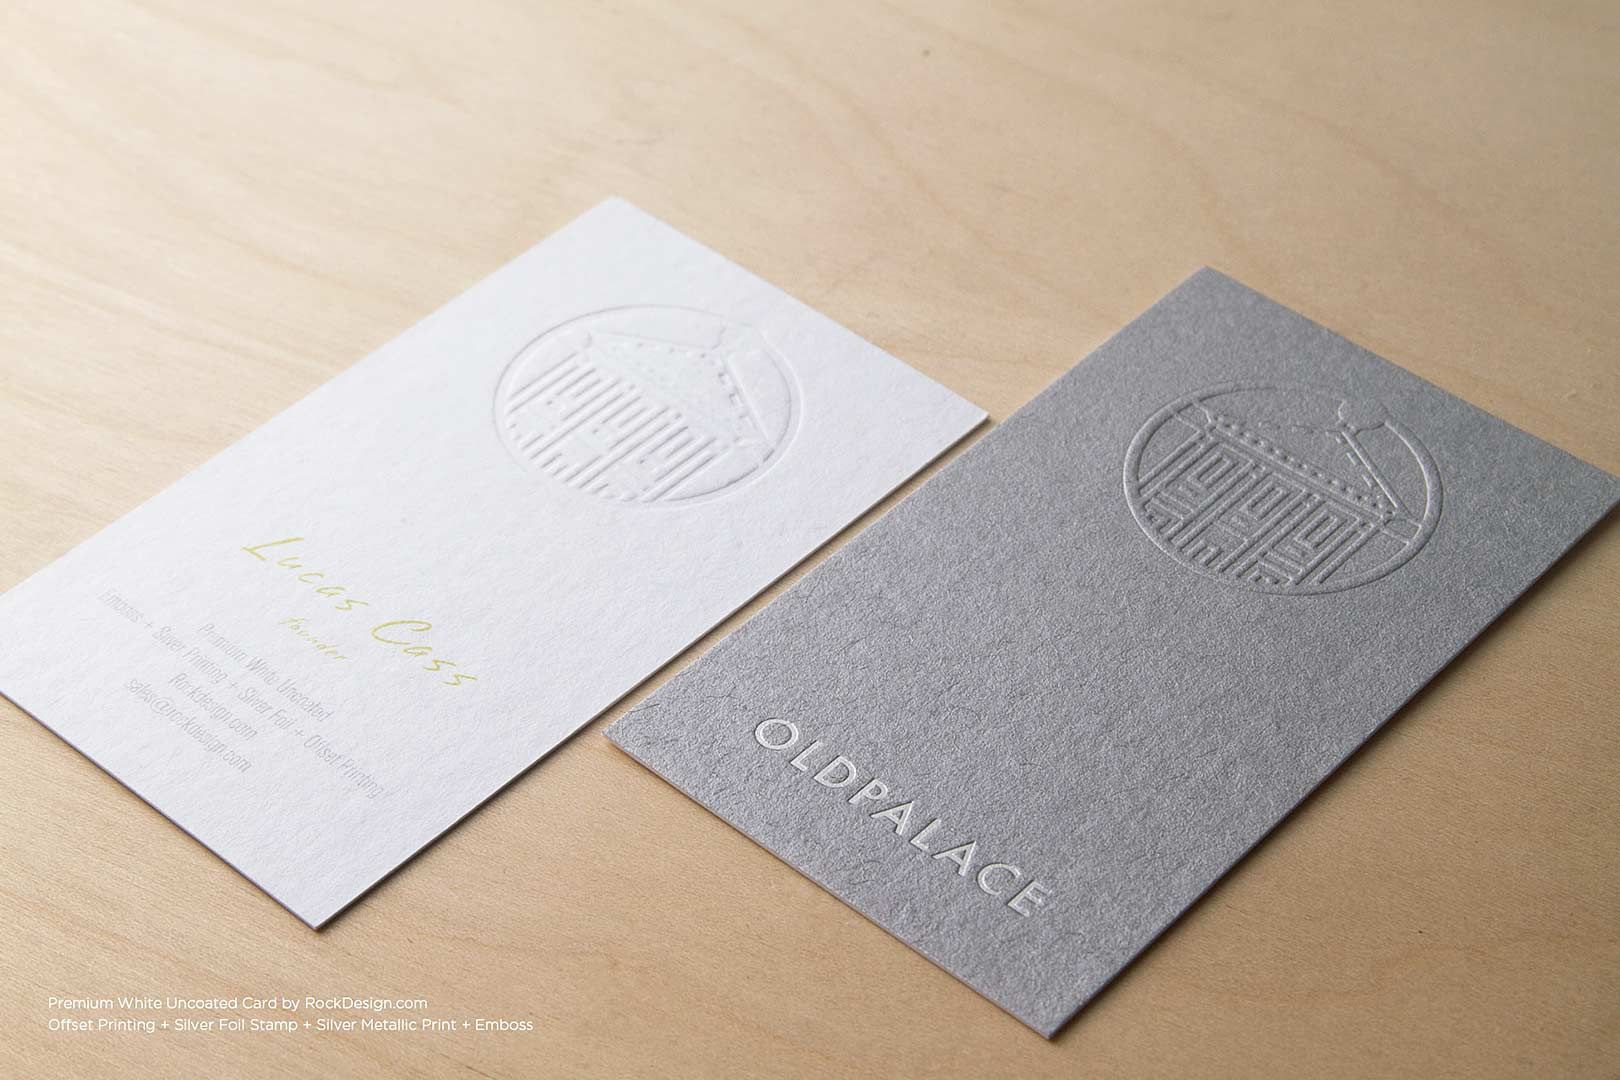 Premium Uncoated Business Cards By Rockdesign Com Embossed Business Cards Premium Business Cards Uncoated Business Cards